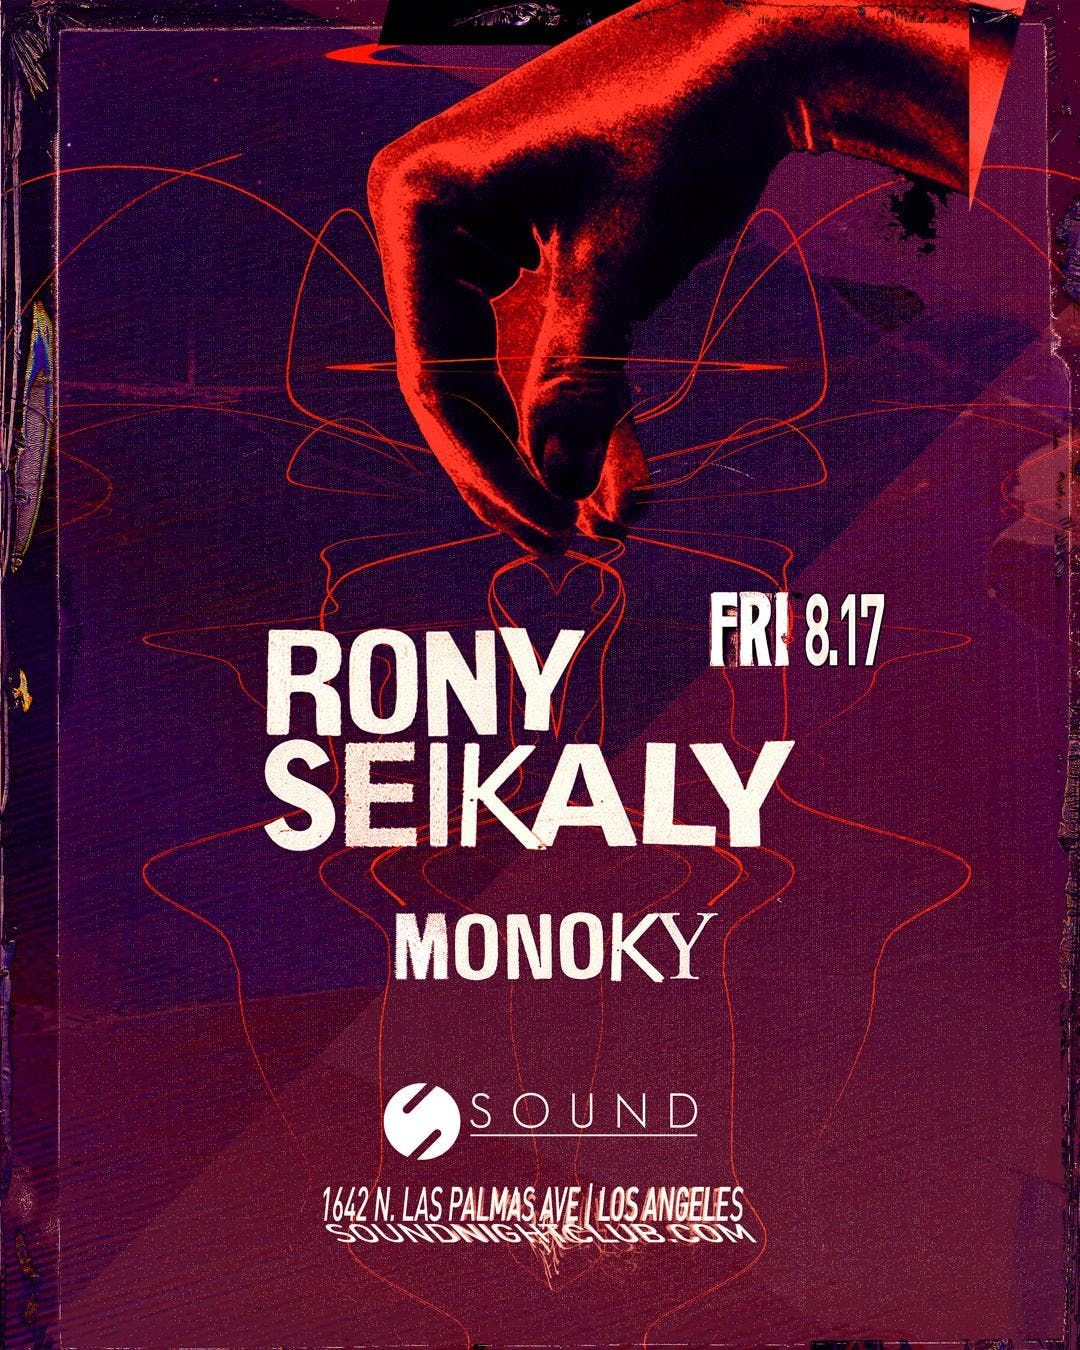 Sound presents Rony Seikaly & Monoky